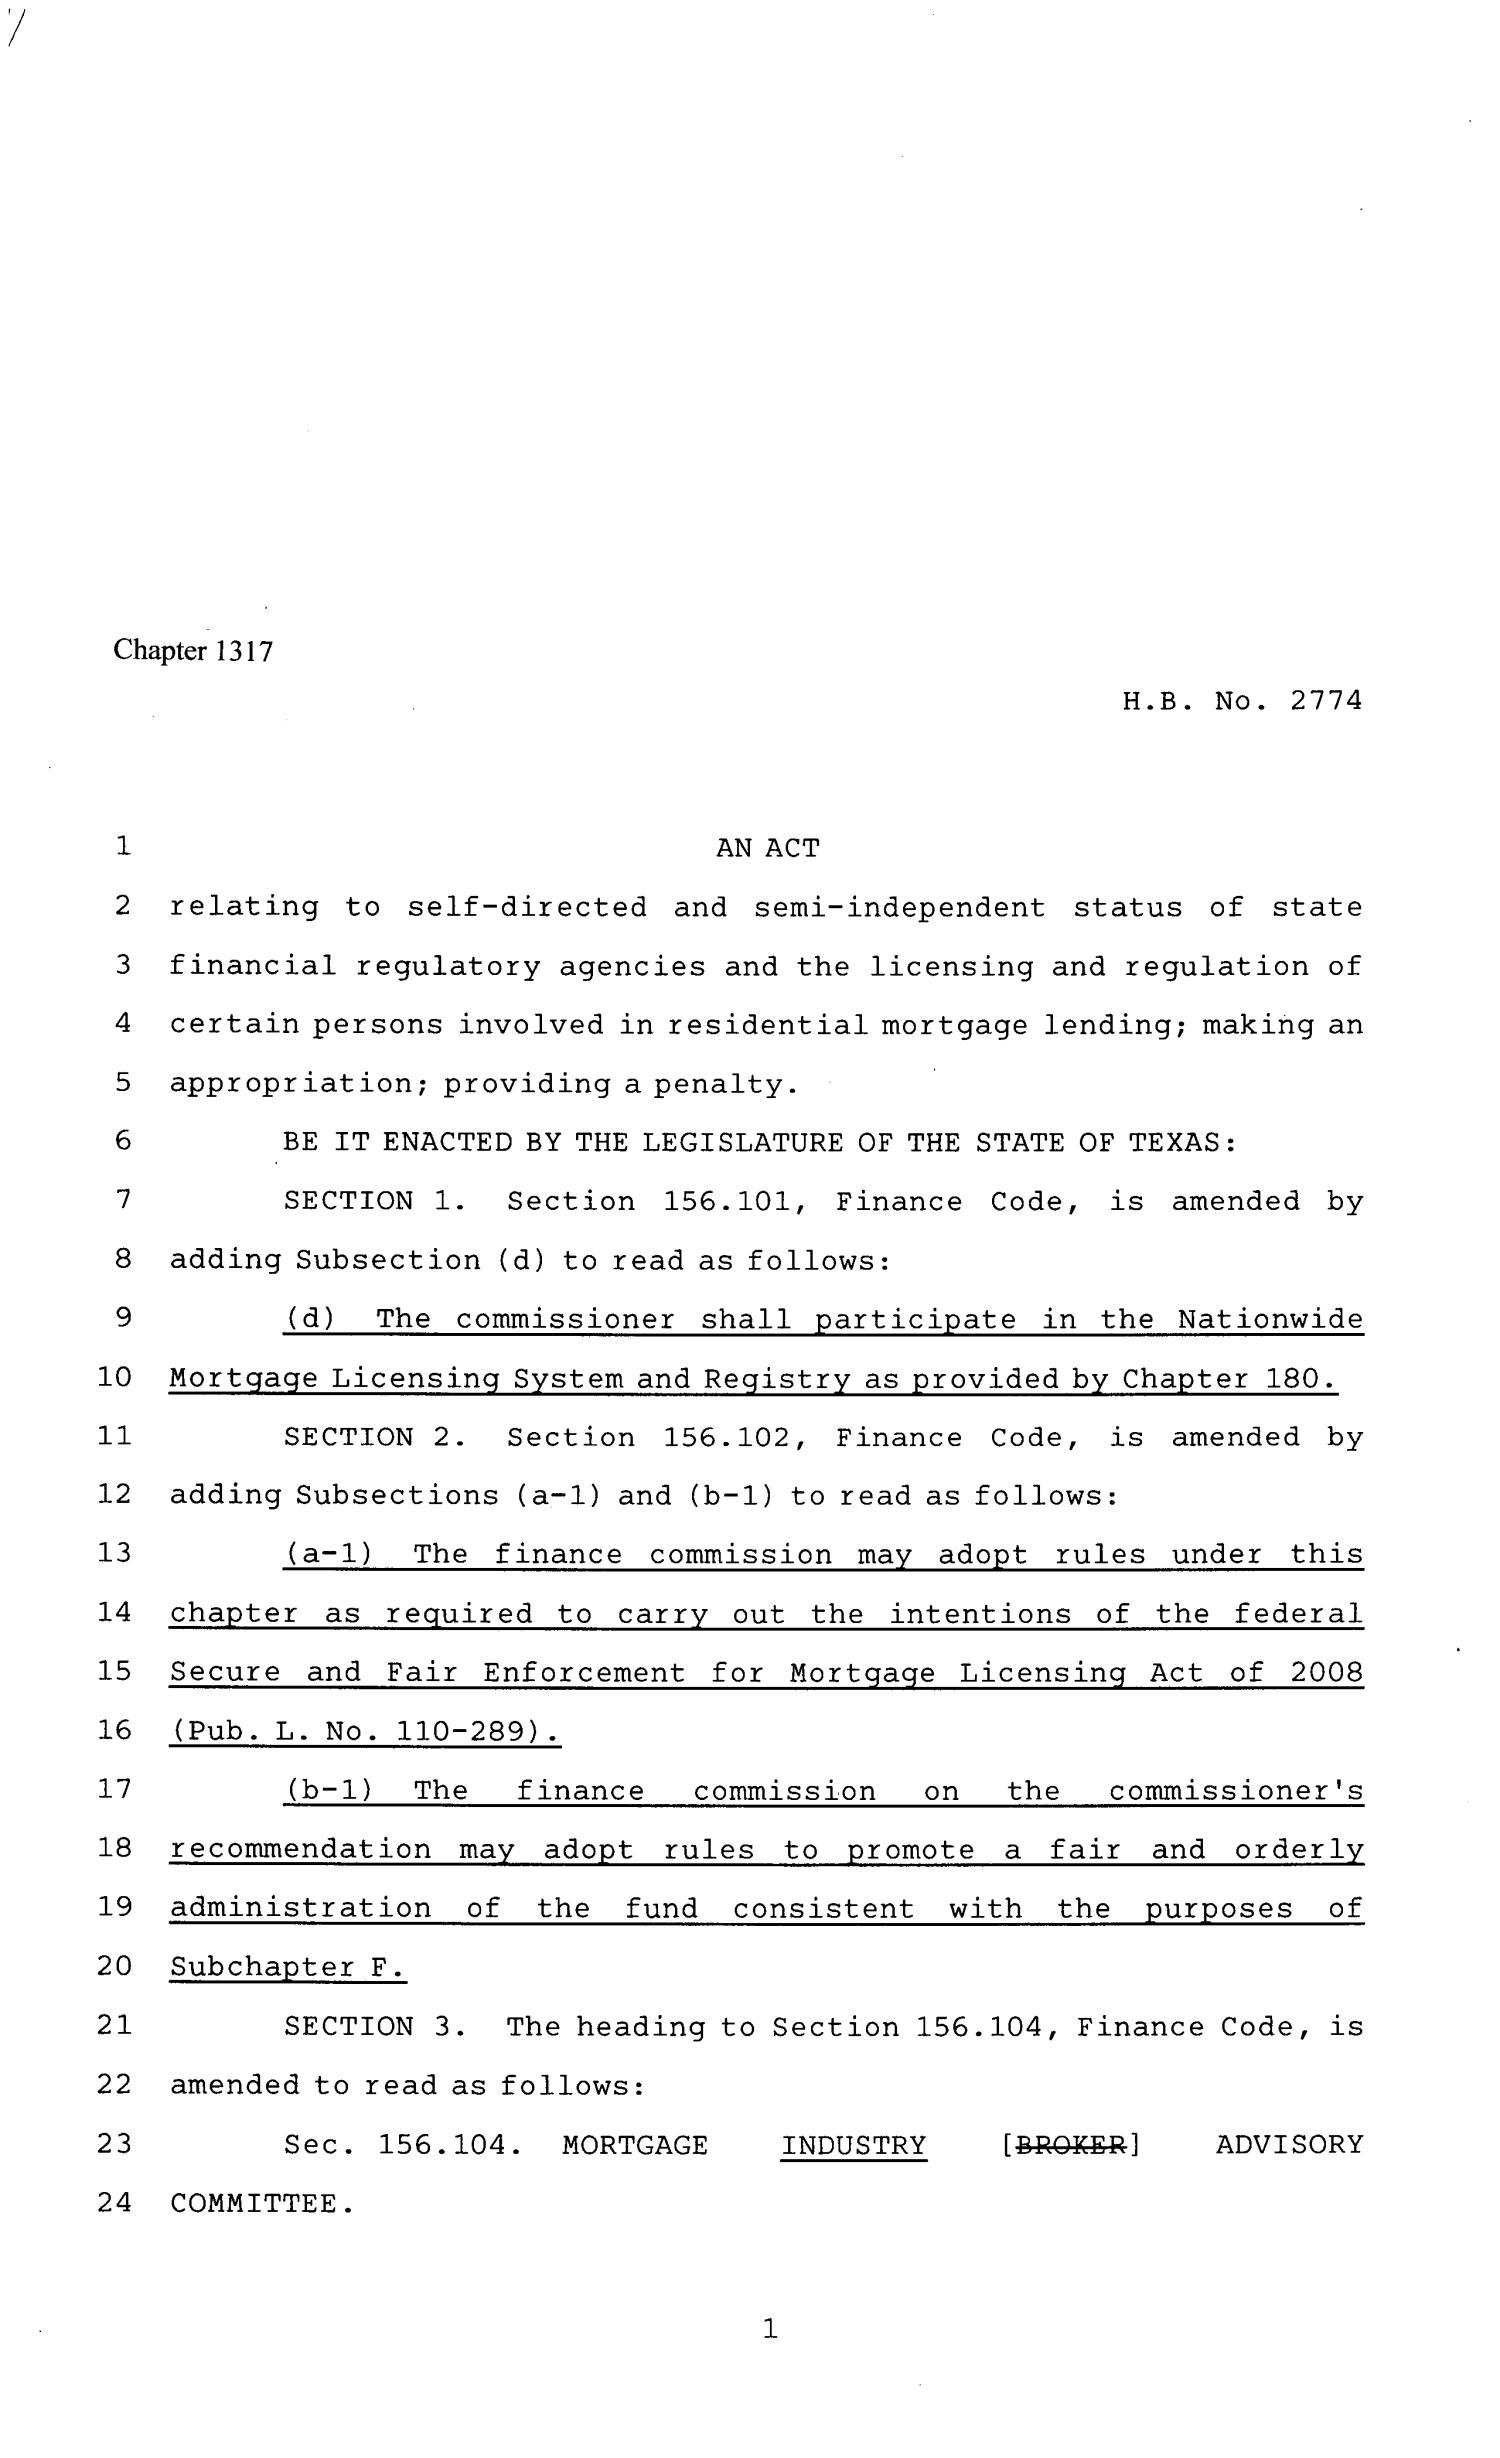 81st Texas Legislature, Regular Session, House Bill 2774, Chapter 1317                                                                                                      [Sequence #]: 1 of 47